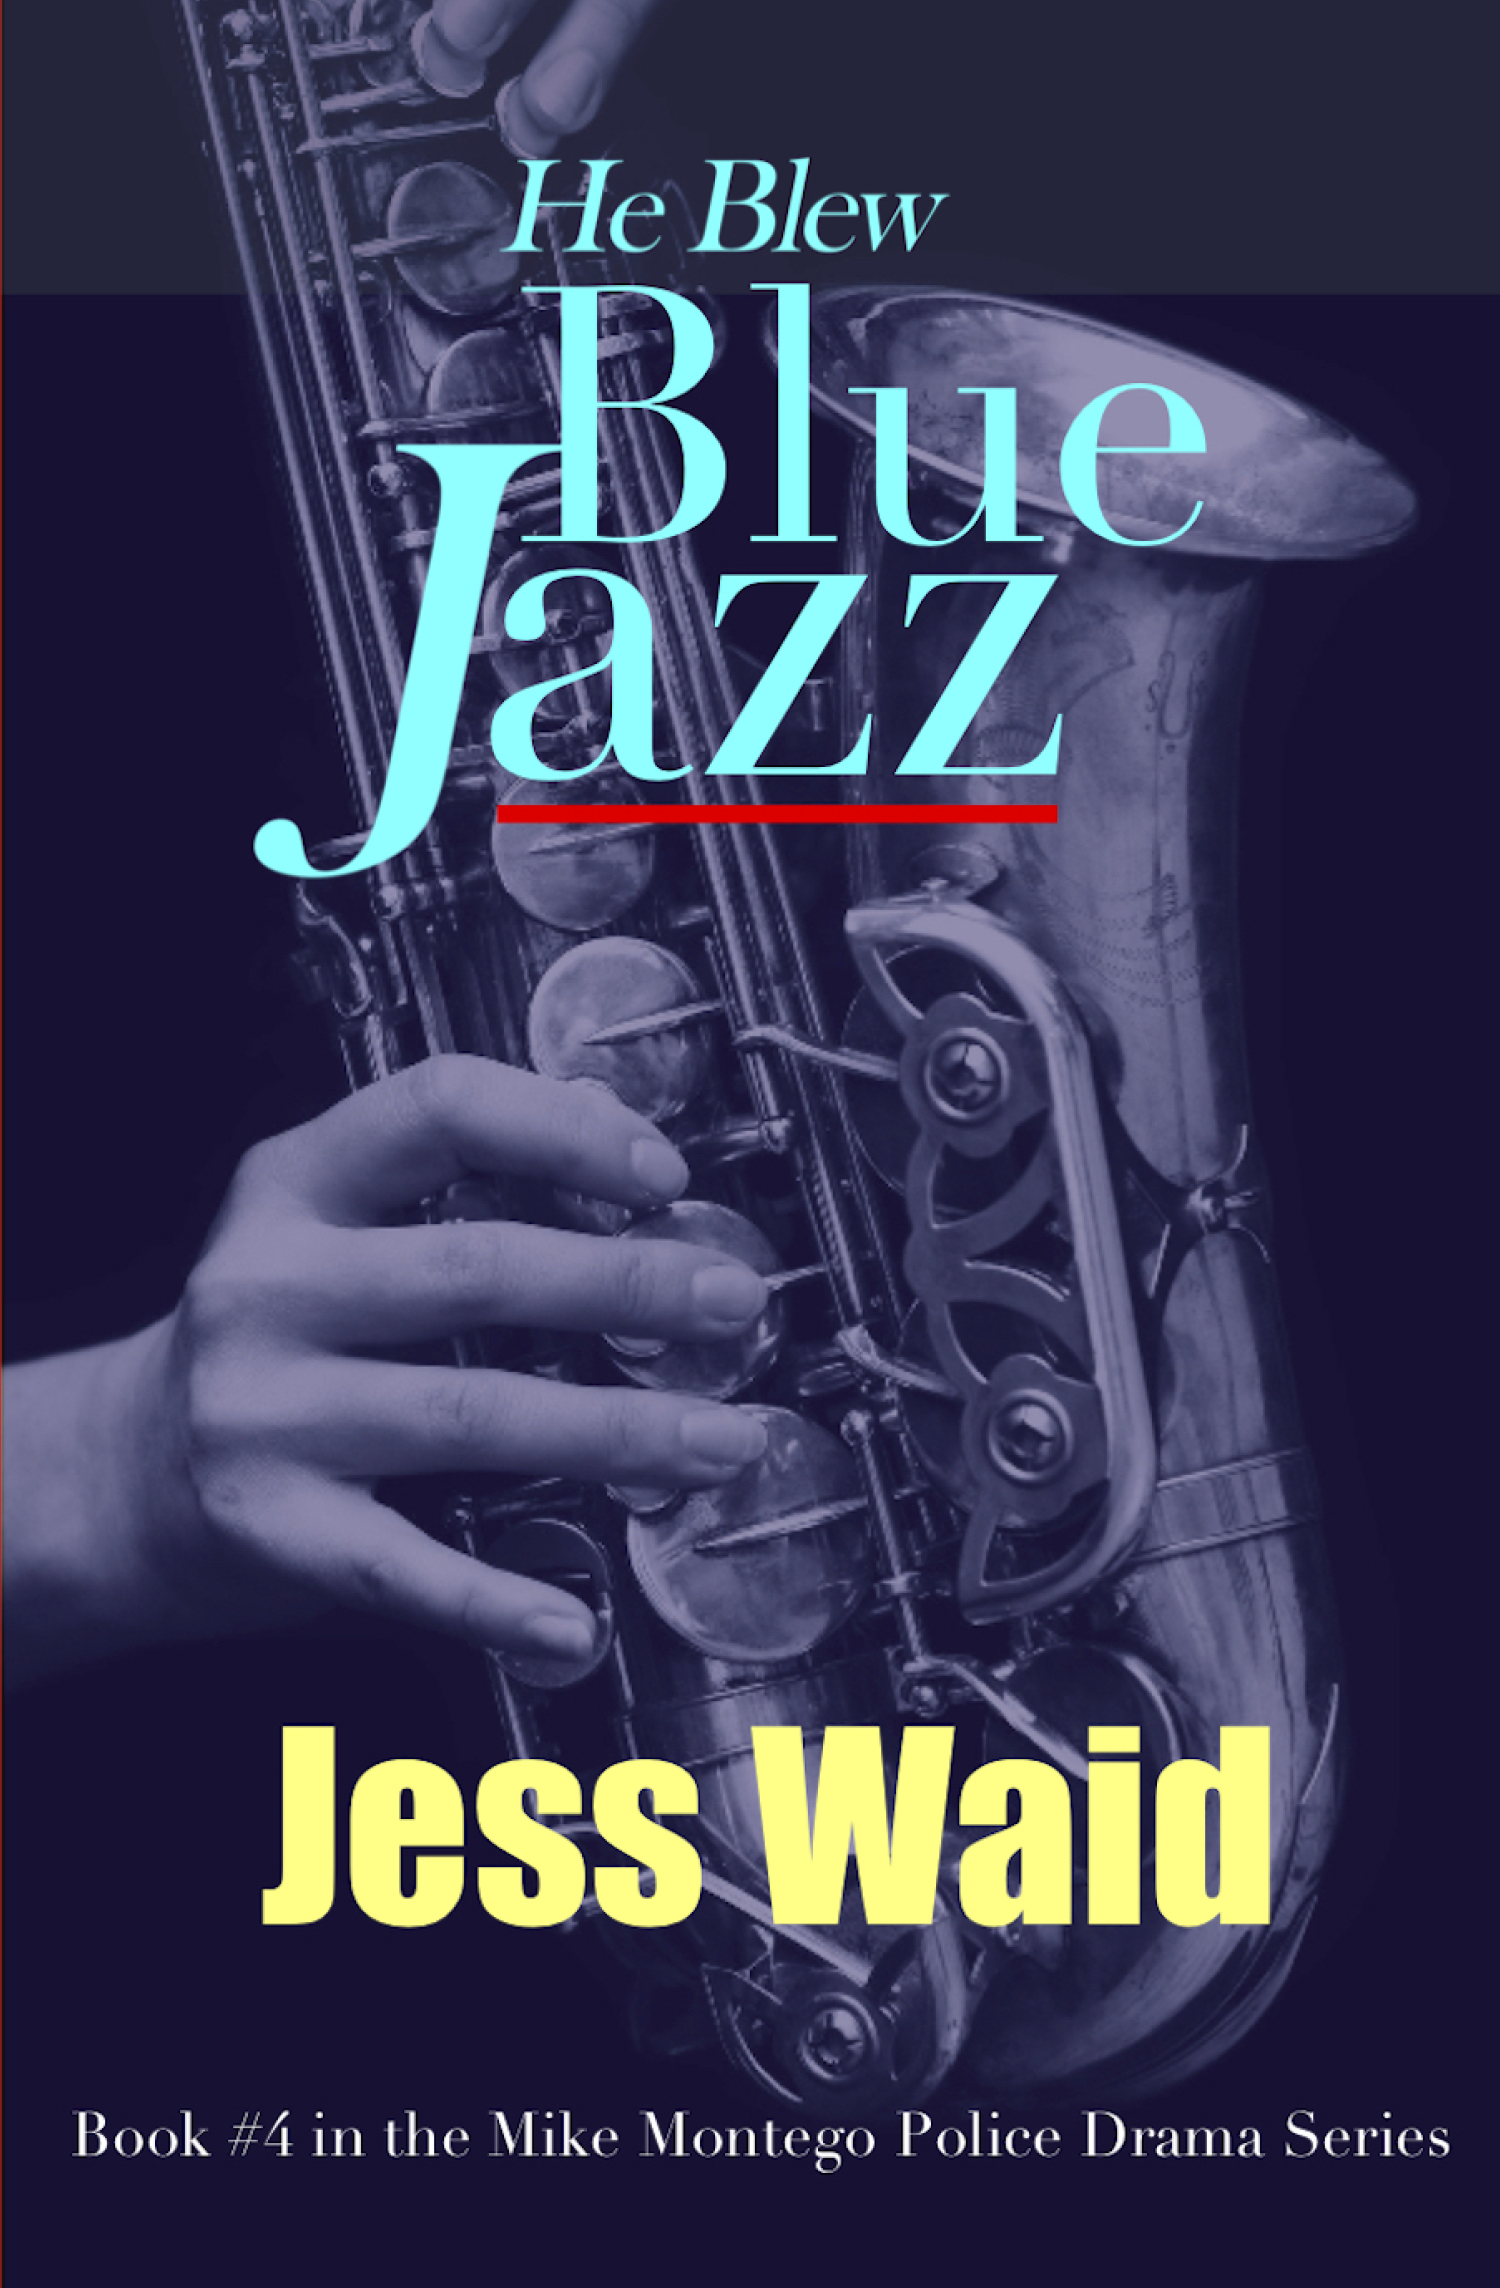 He Blew Blue Jazz (Book #4 in the Mike Montego Police Drama Series) Image